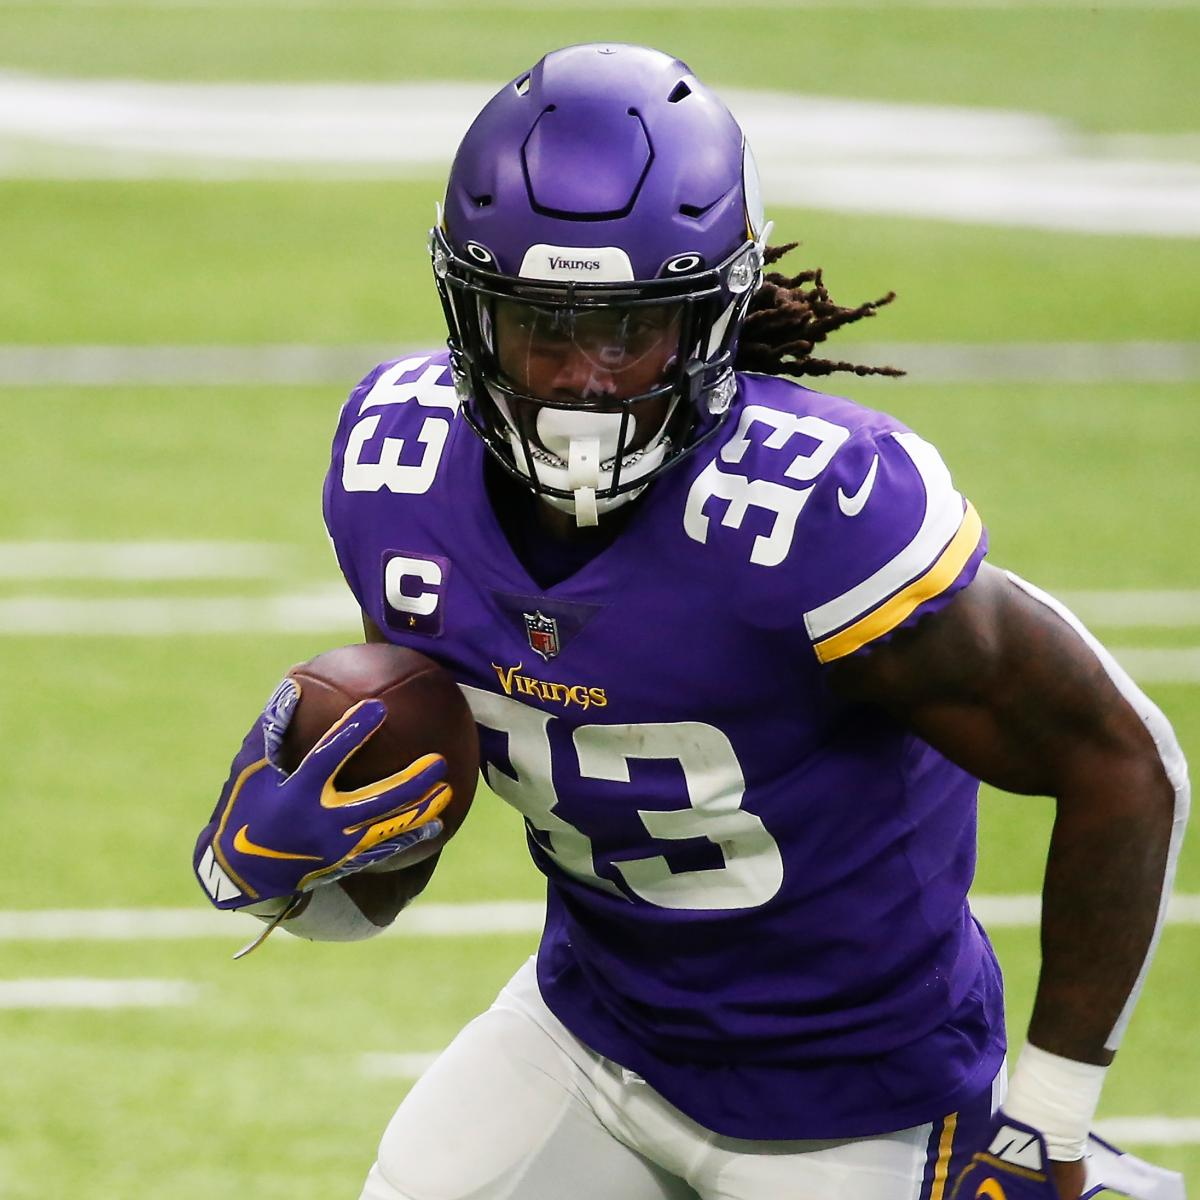 Vikings' Dalvin Cook Joins Ownership Group for FCF's Zappers thumbnail